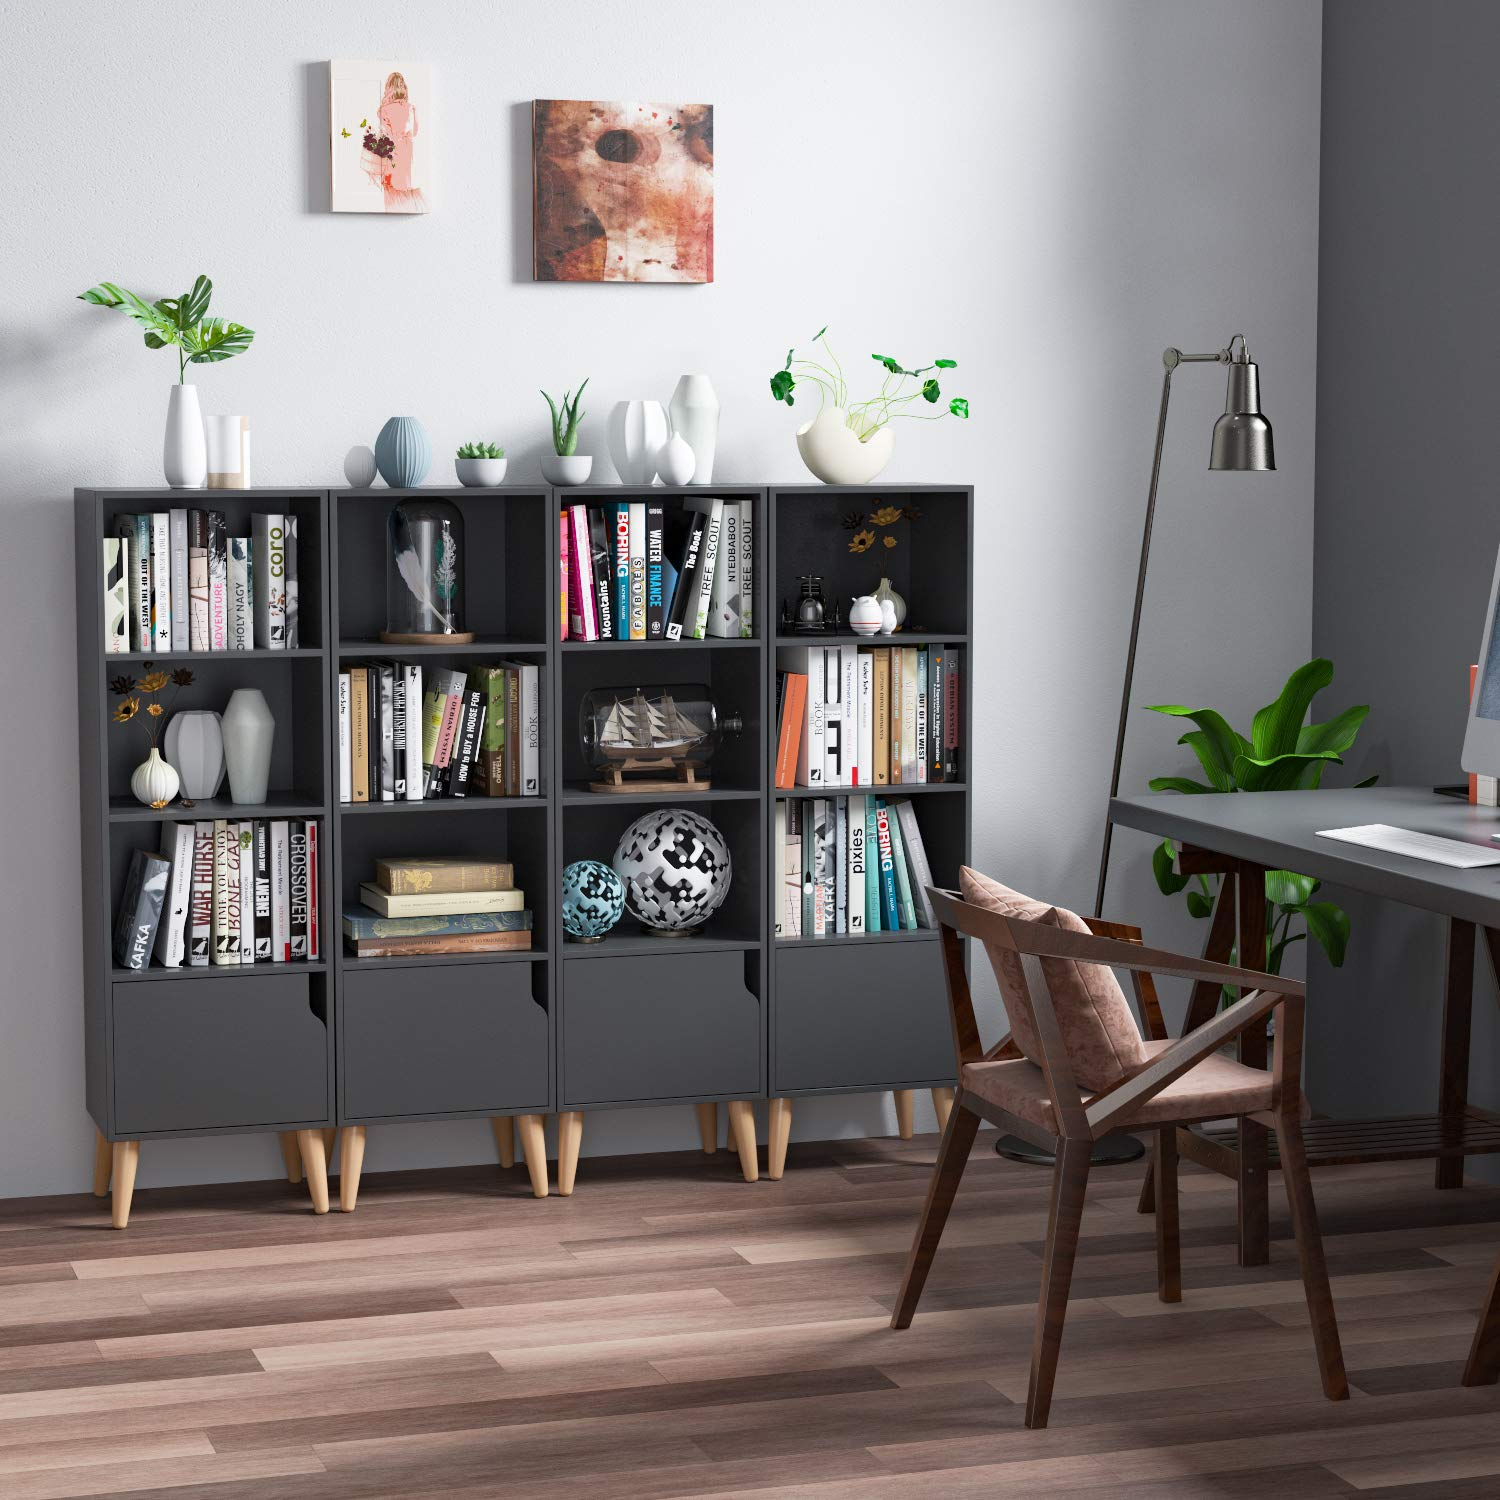 Homfa 4 Tier Floor Cabinet, Free Standing Wooden Display Bookshelf with 4 Legs and 1 Door, Side Corner Storage Cabinet Decor Furniture for Home Office, Gray by Homfa (Image #4)